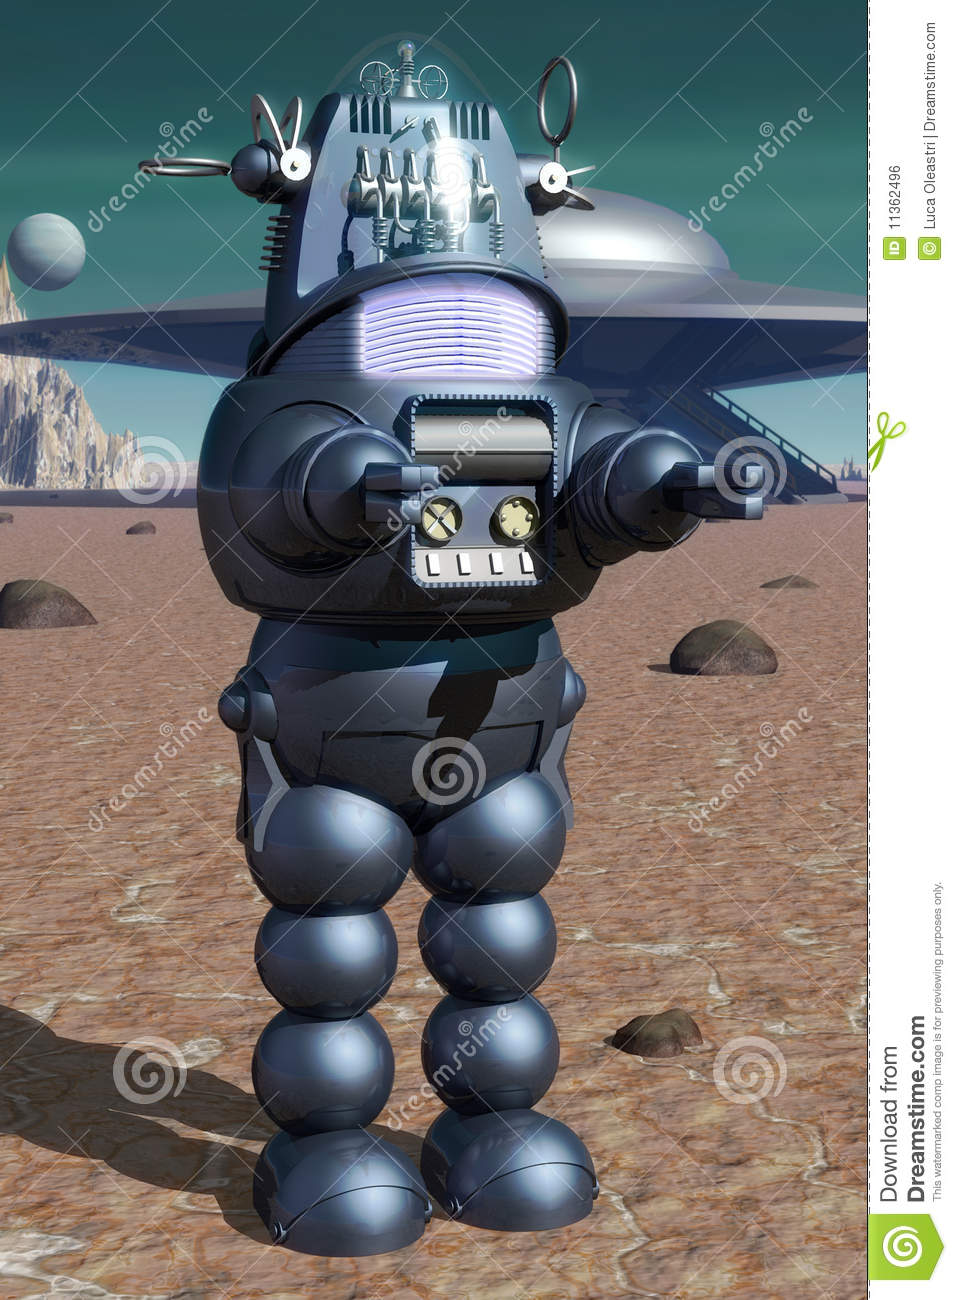 Classic Robot Stock Illustration Image Of Landscape